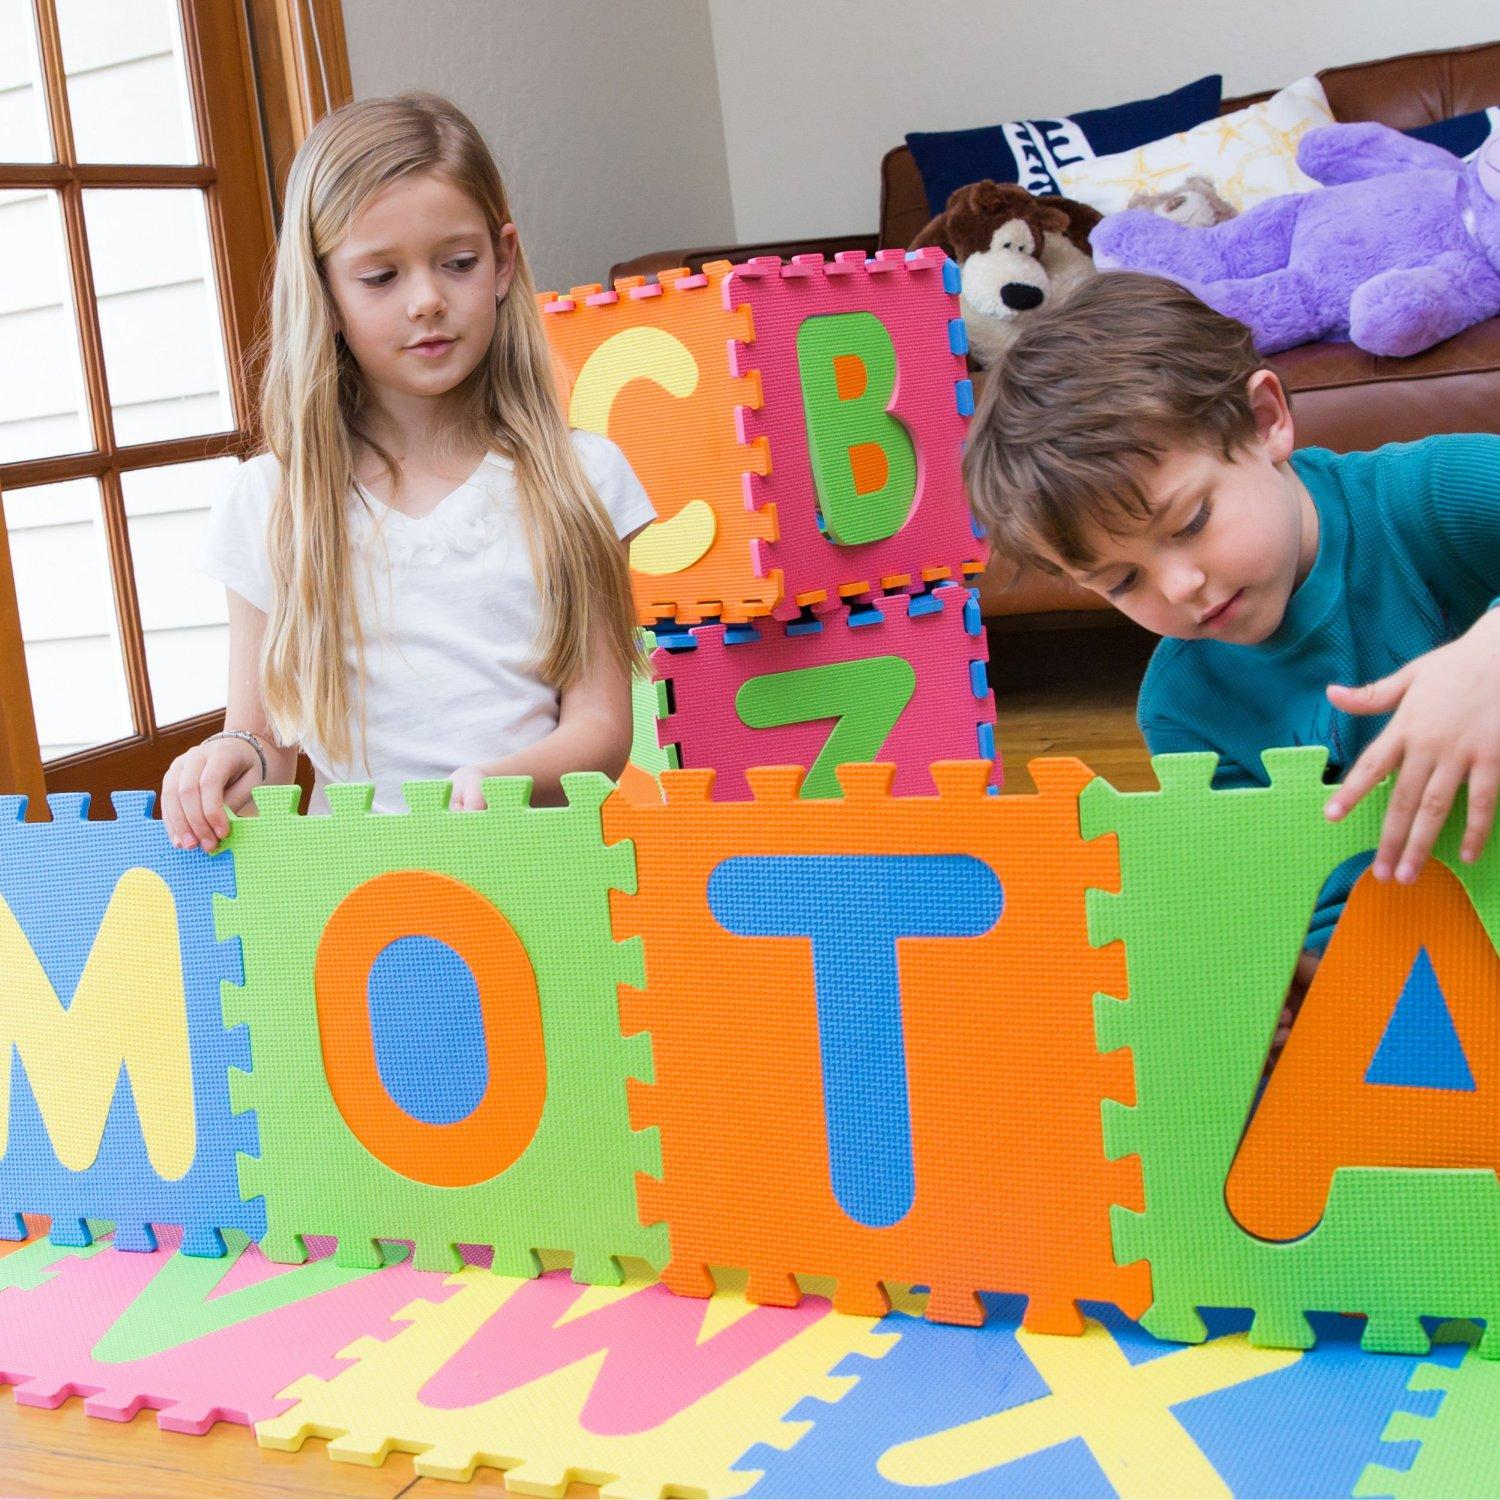 $14.99 MOTA Alphabet ABC Floor Play Mat for Ages 2+ (Foam Puzzle Play Mat)